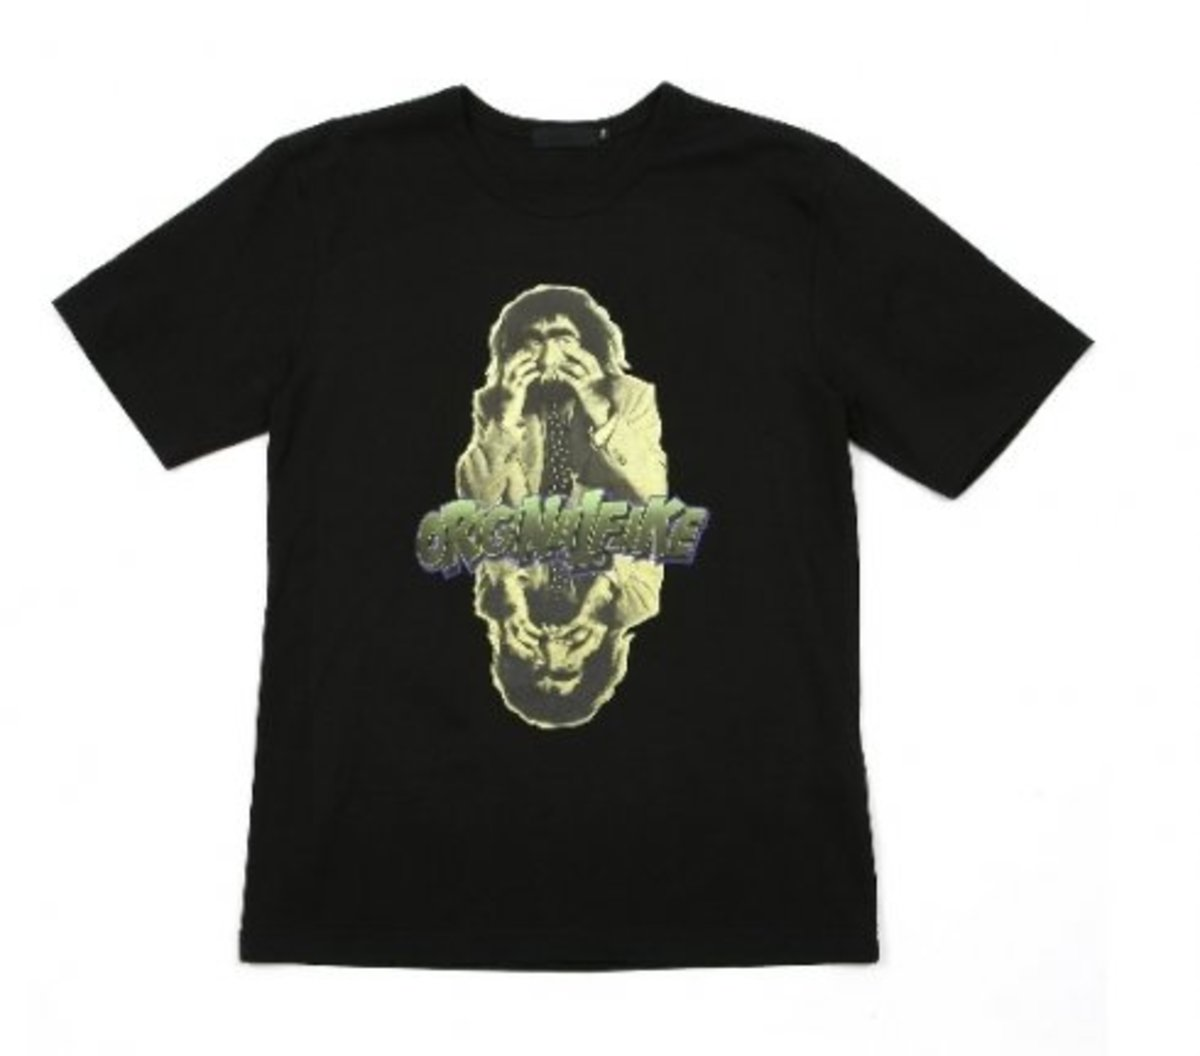 OriginalFake - Monster T-Shirt - 0